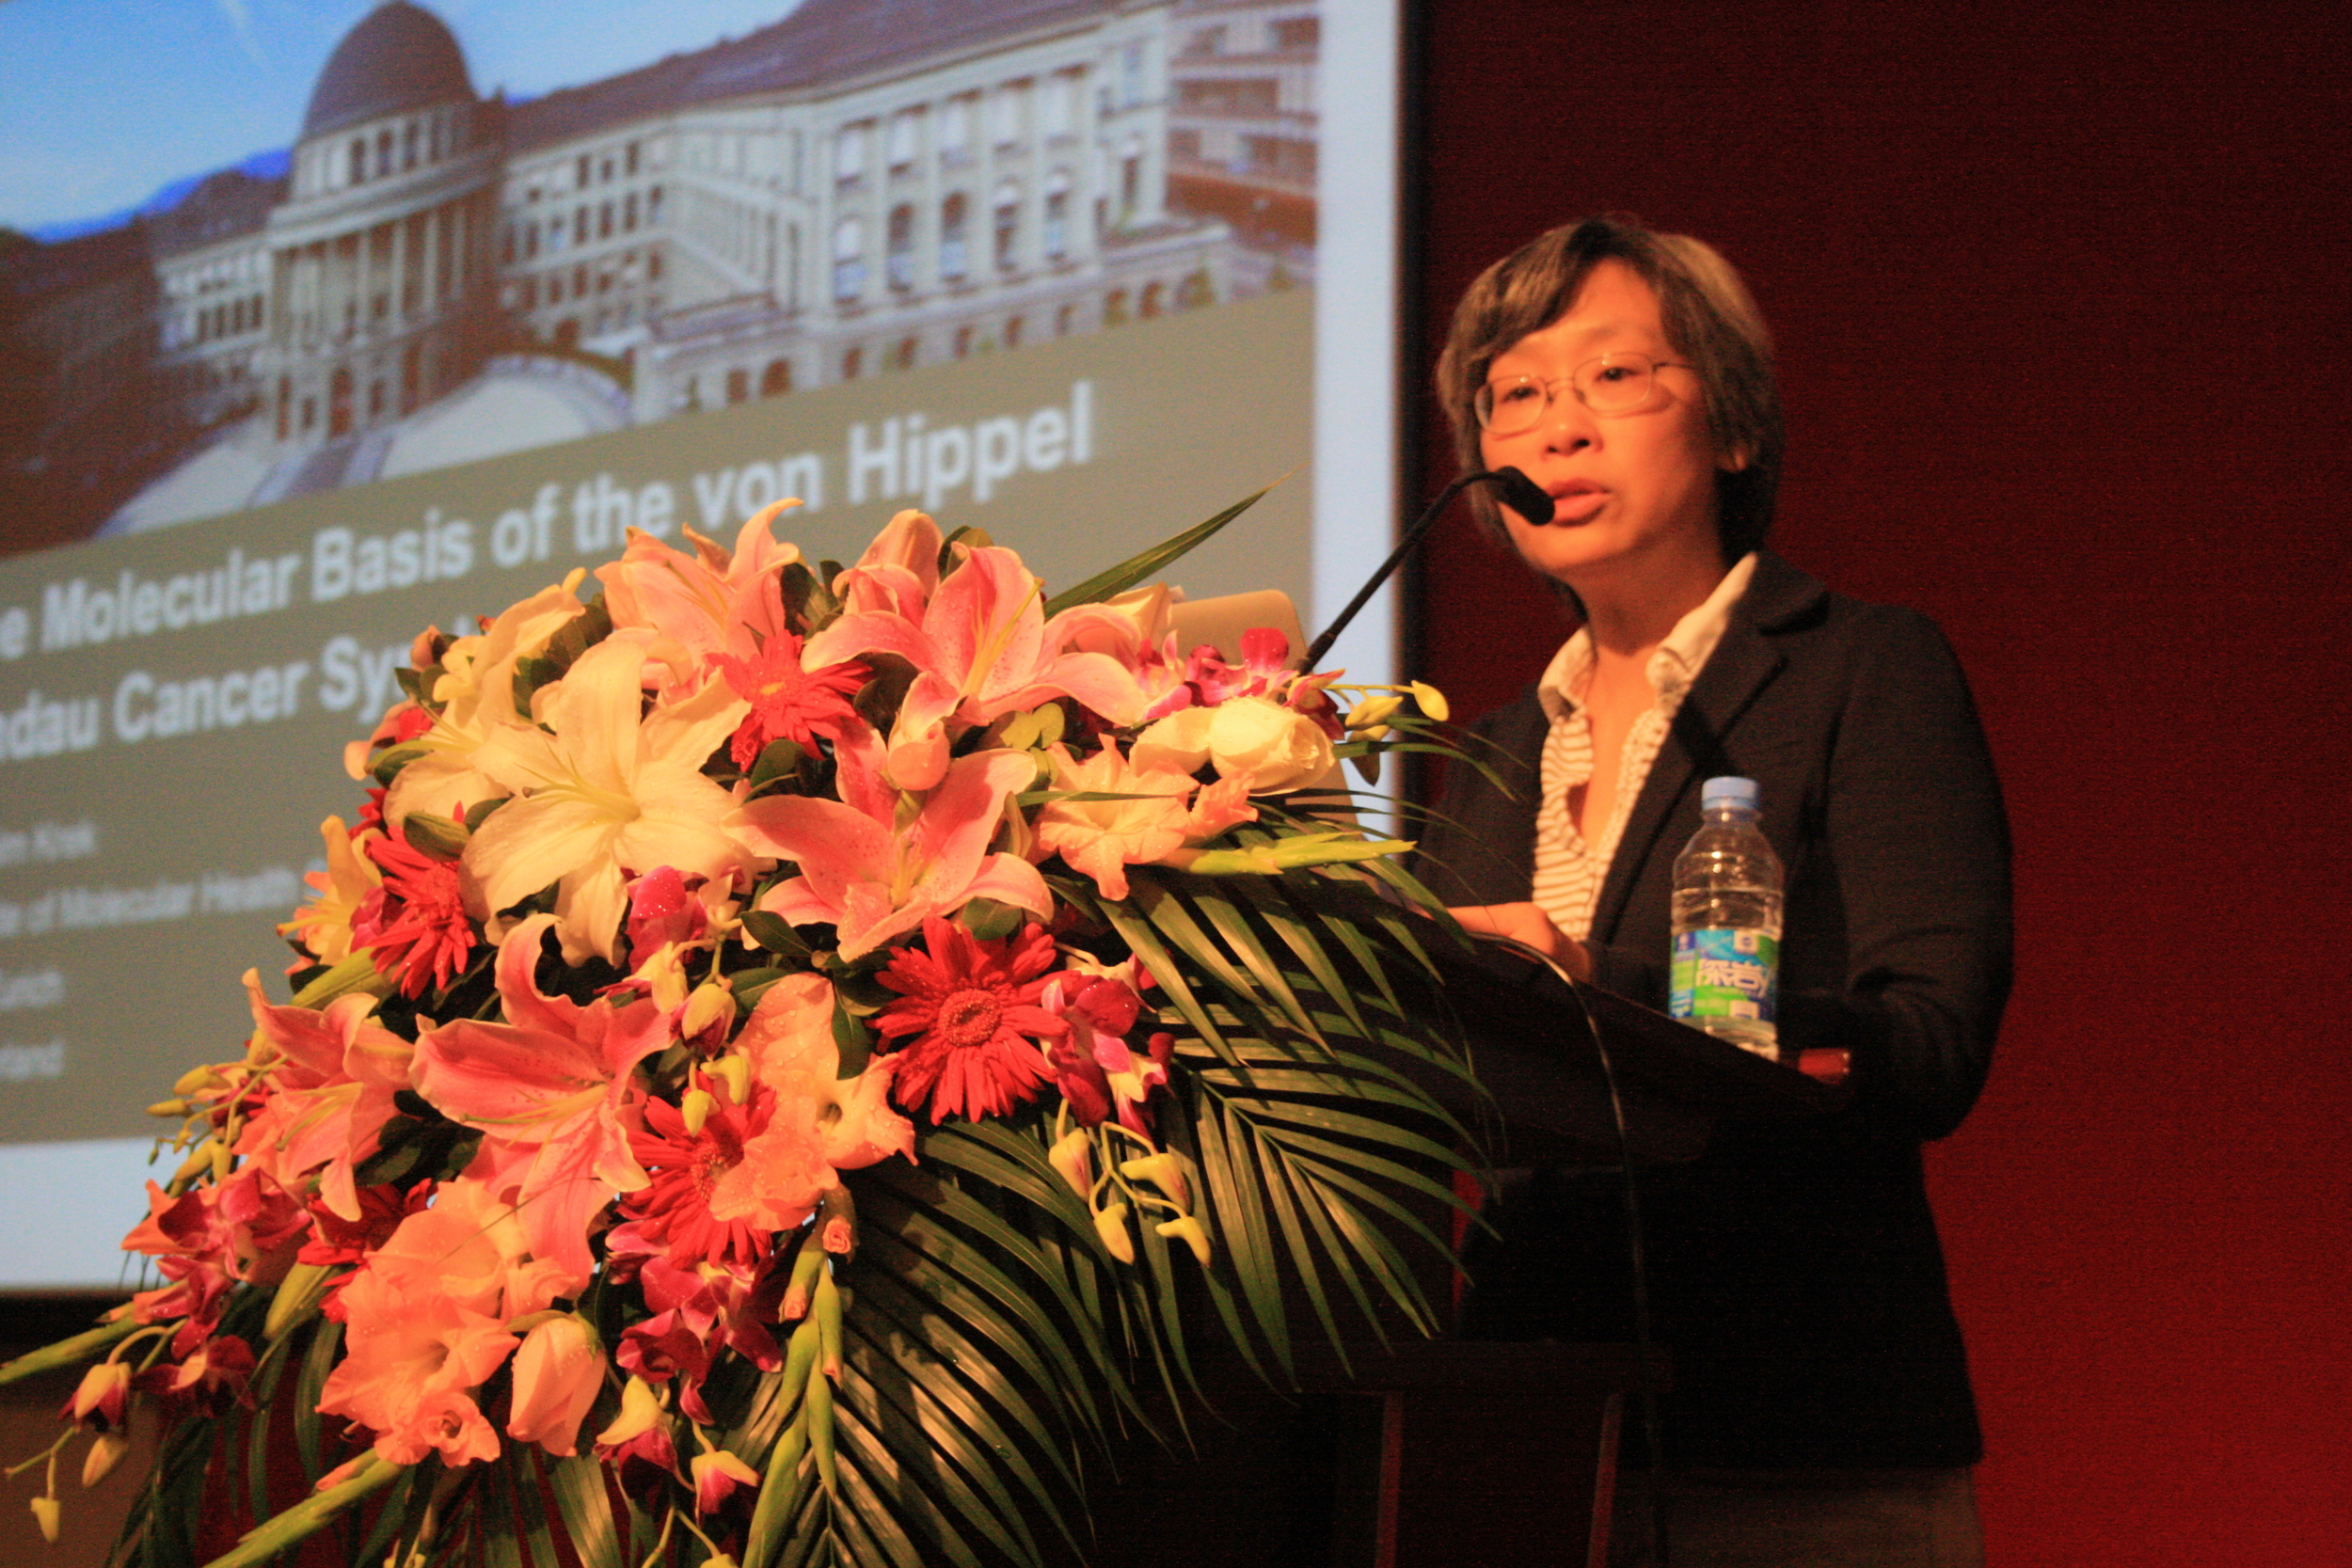 ETH Dr. Maio Su Chen, program manager of Sino Swiss Science and Technology Program